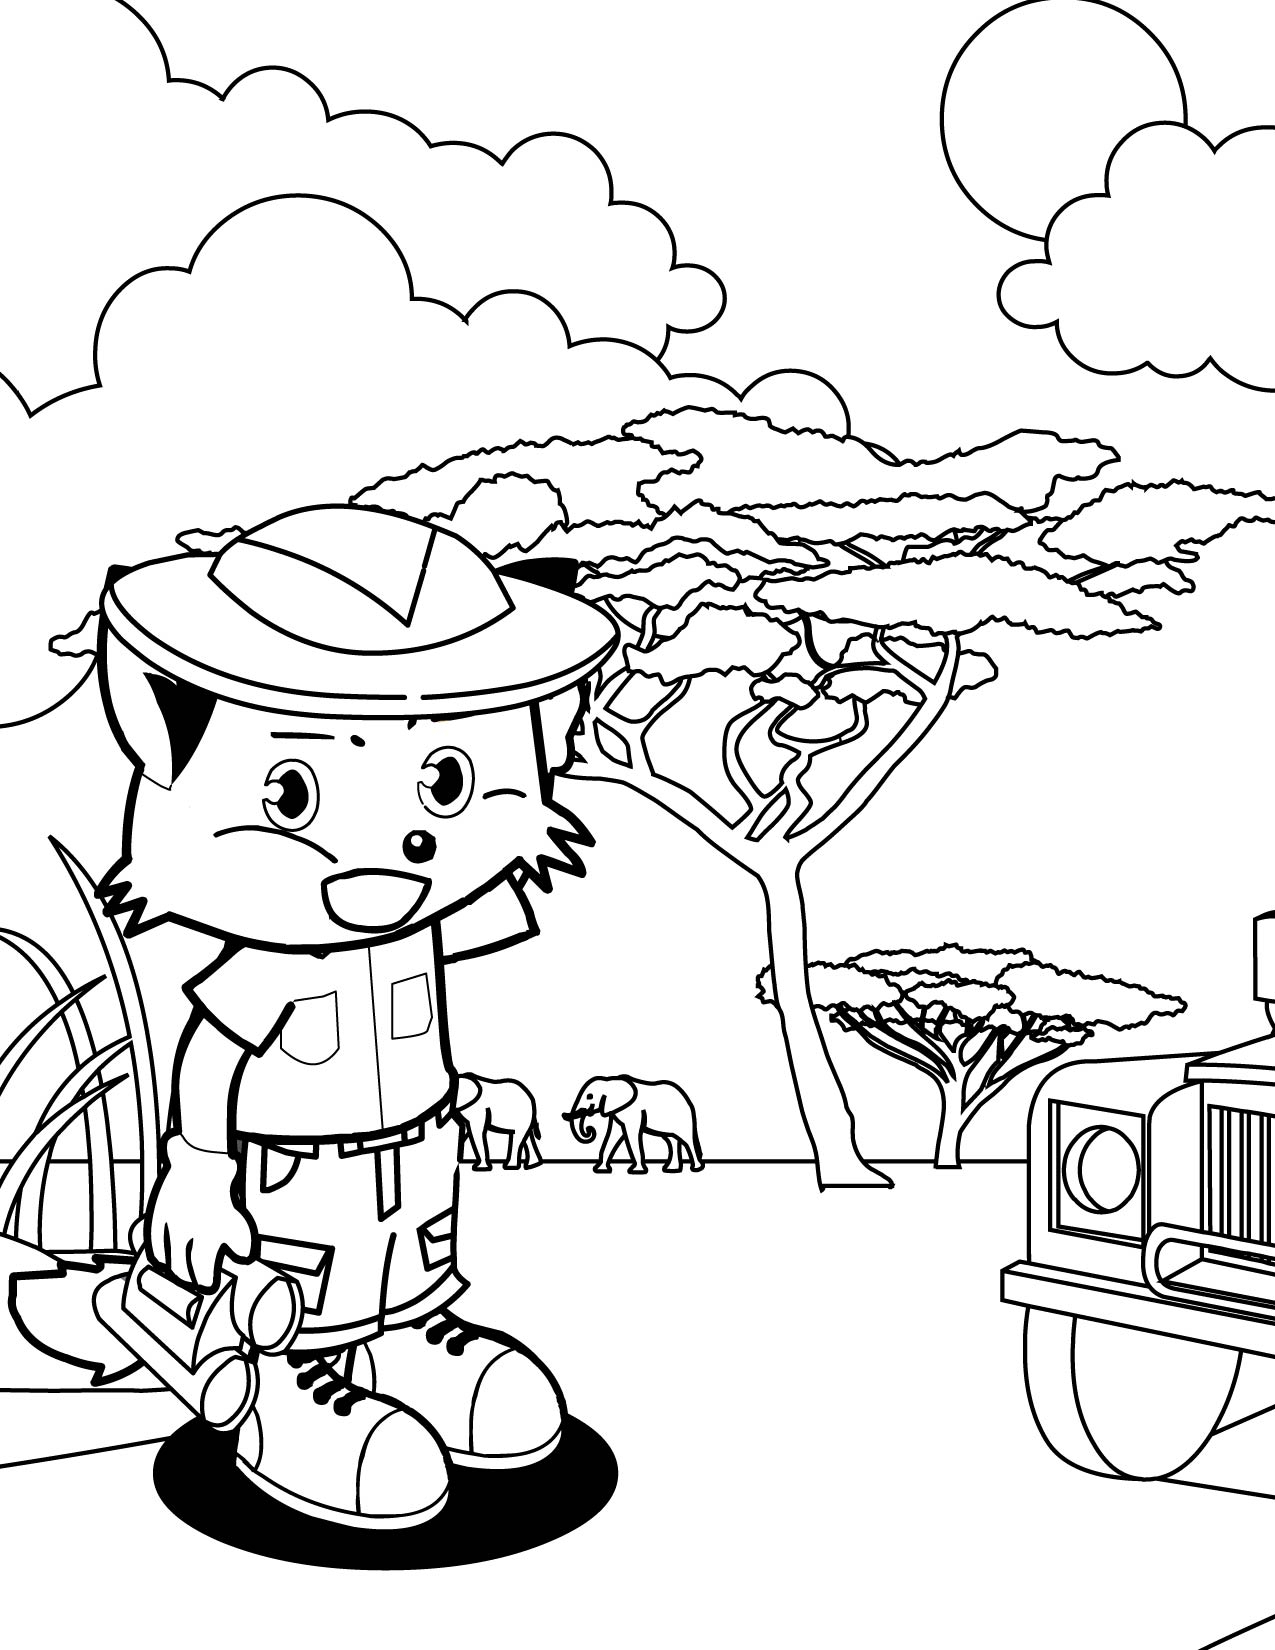 Safari Coloring Page Handipoints To Print Free Sheets Pages For Jurassic World